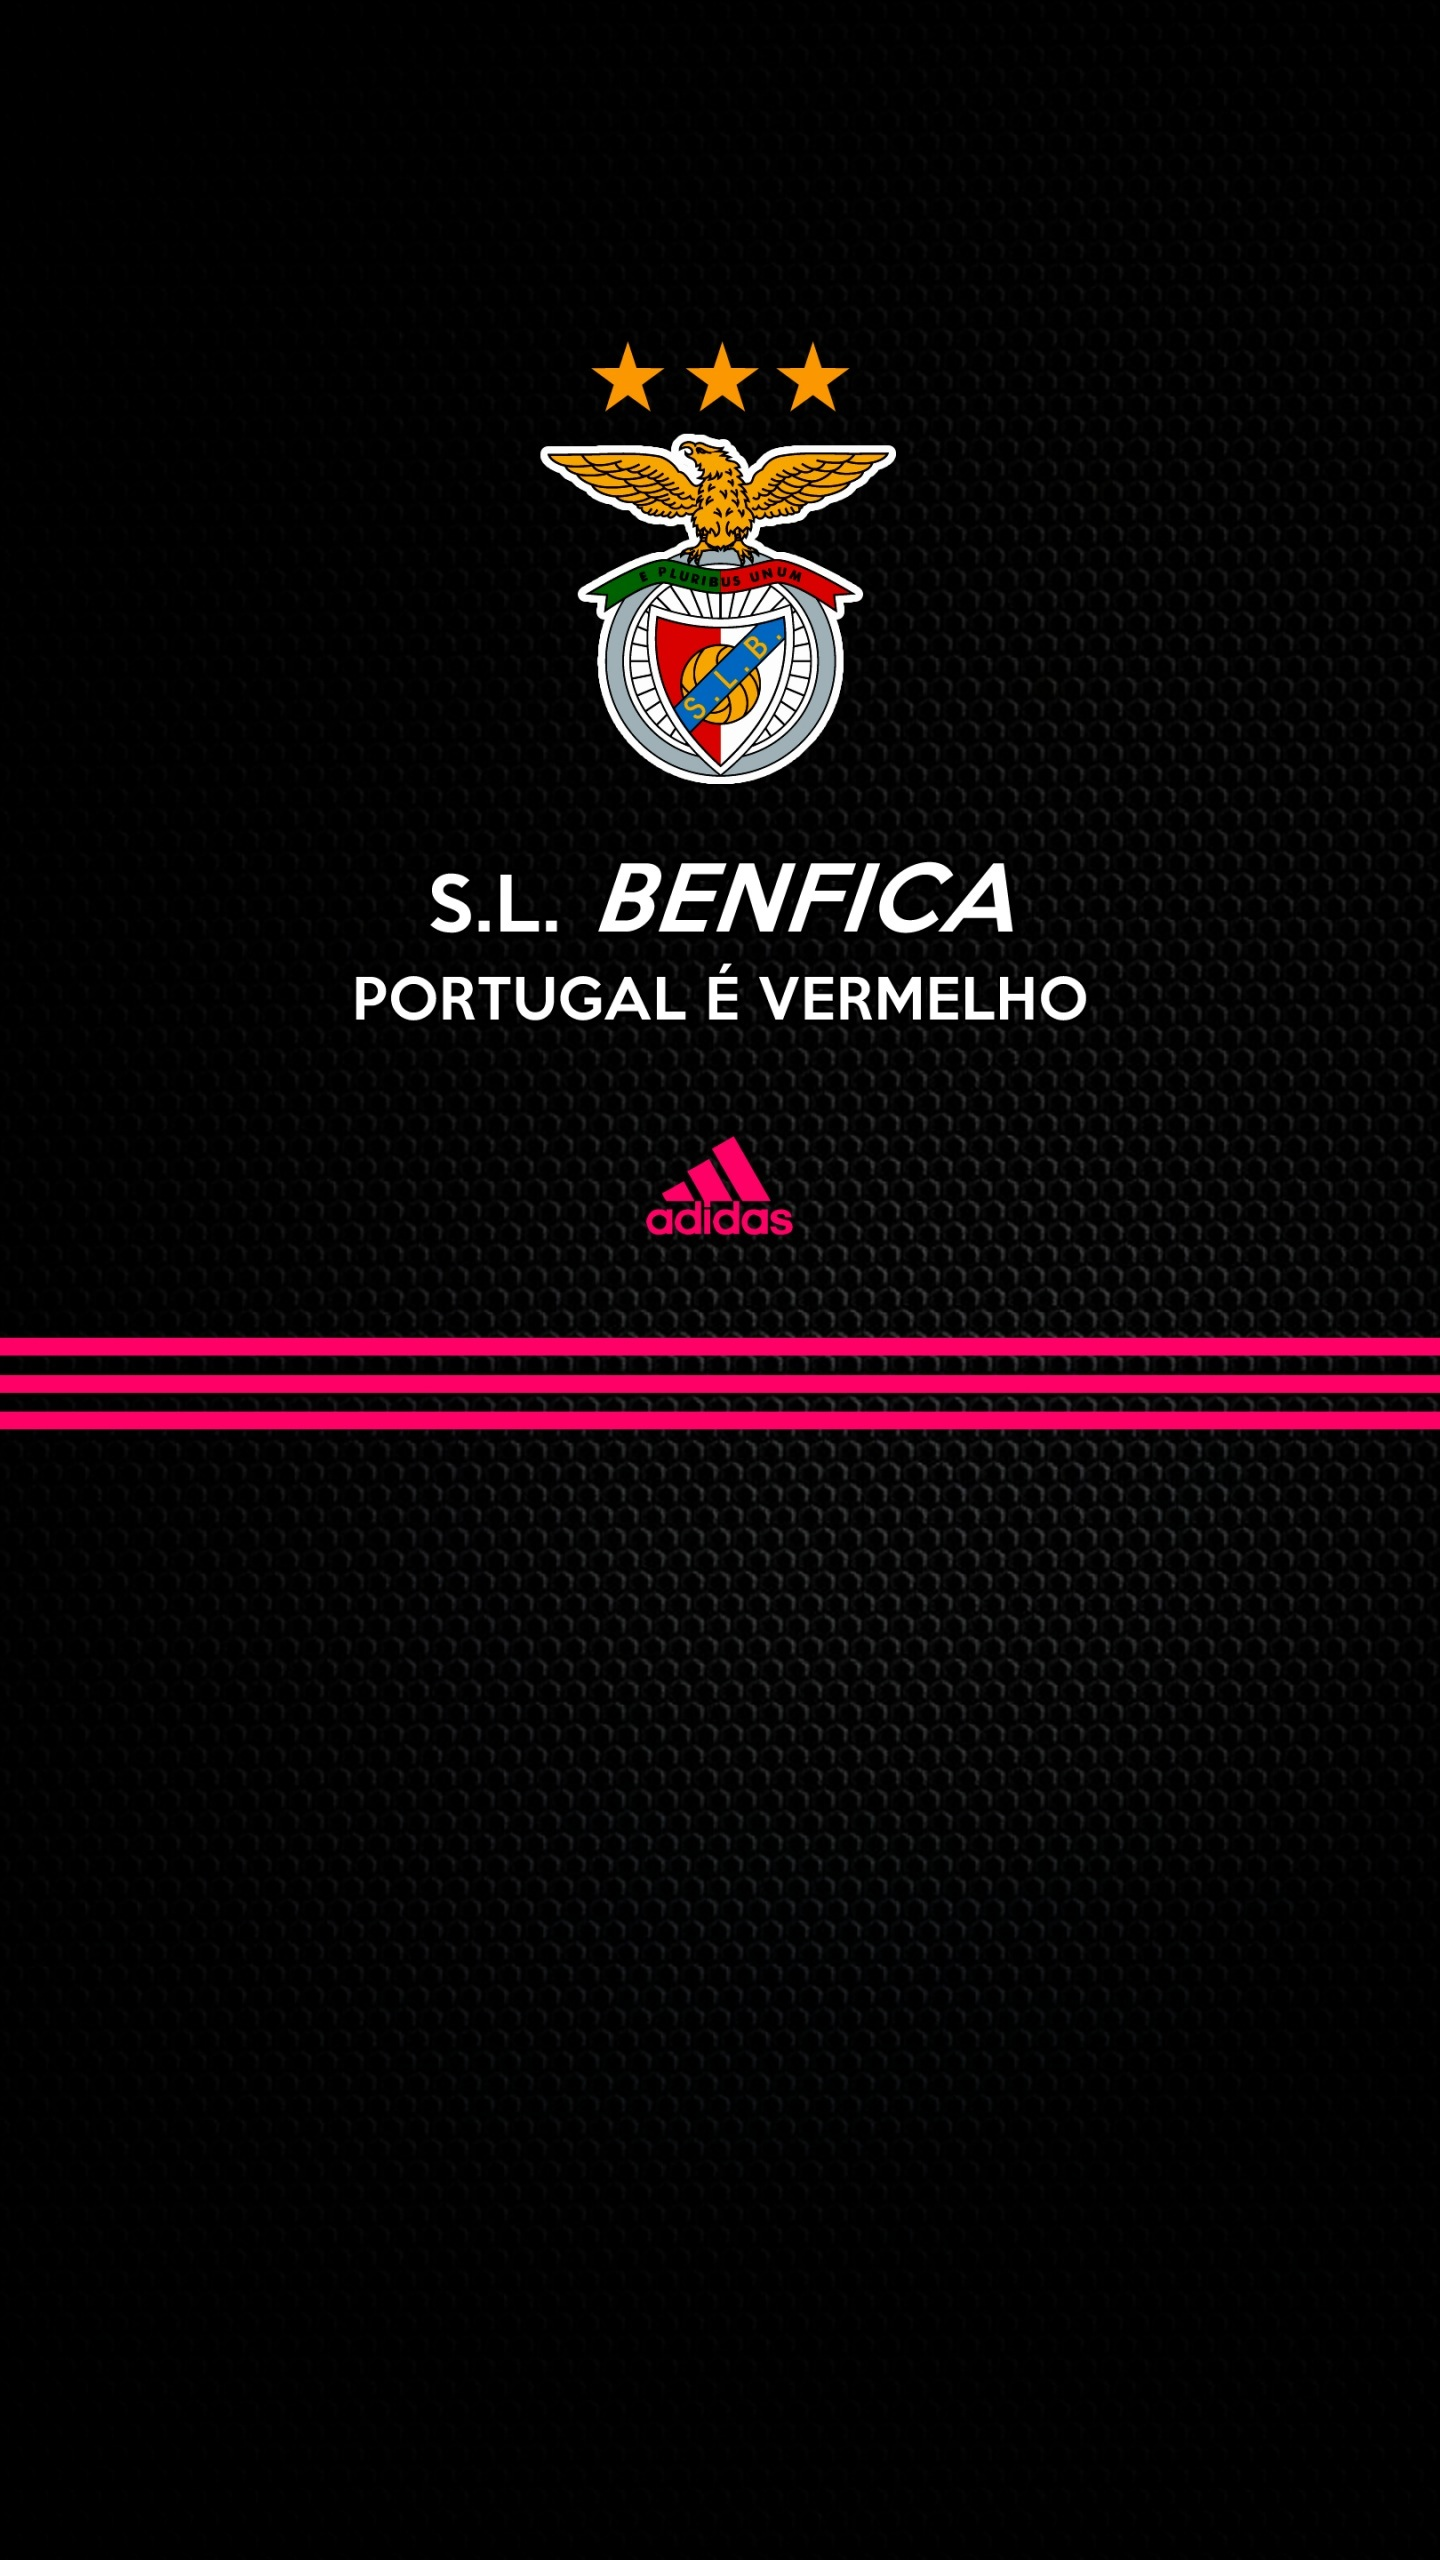 1440x2560 - S.L. Benfica Wallpapers 18